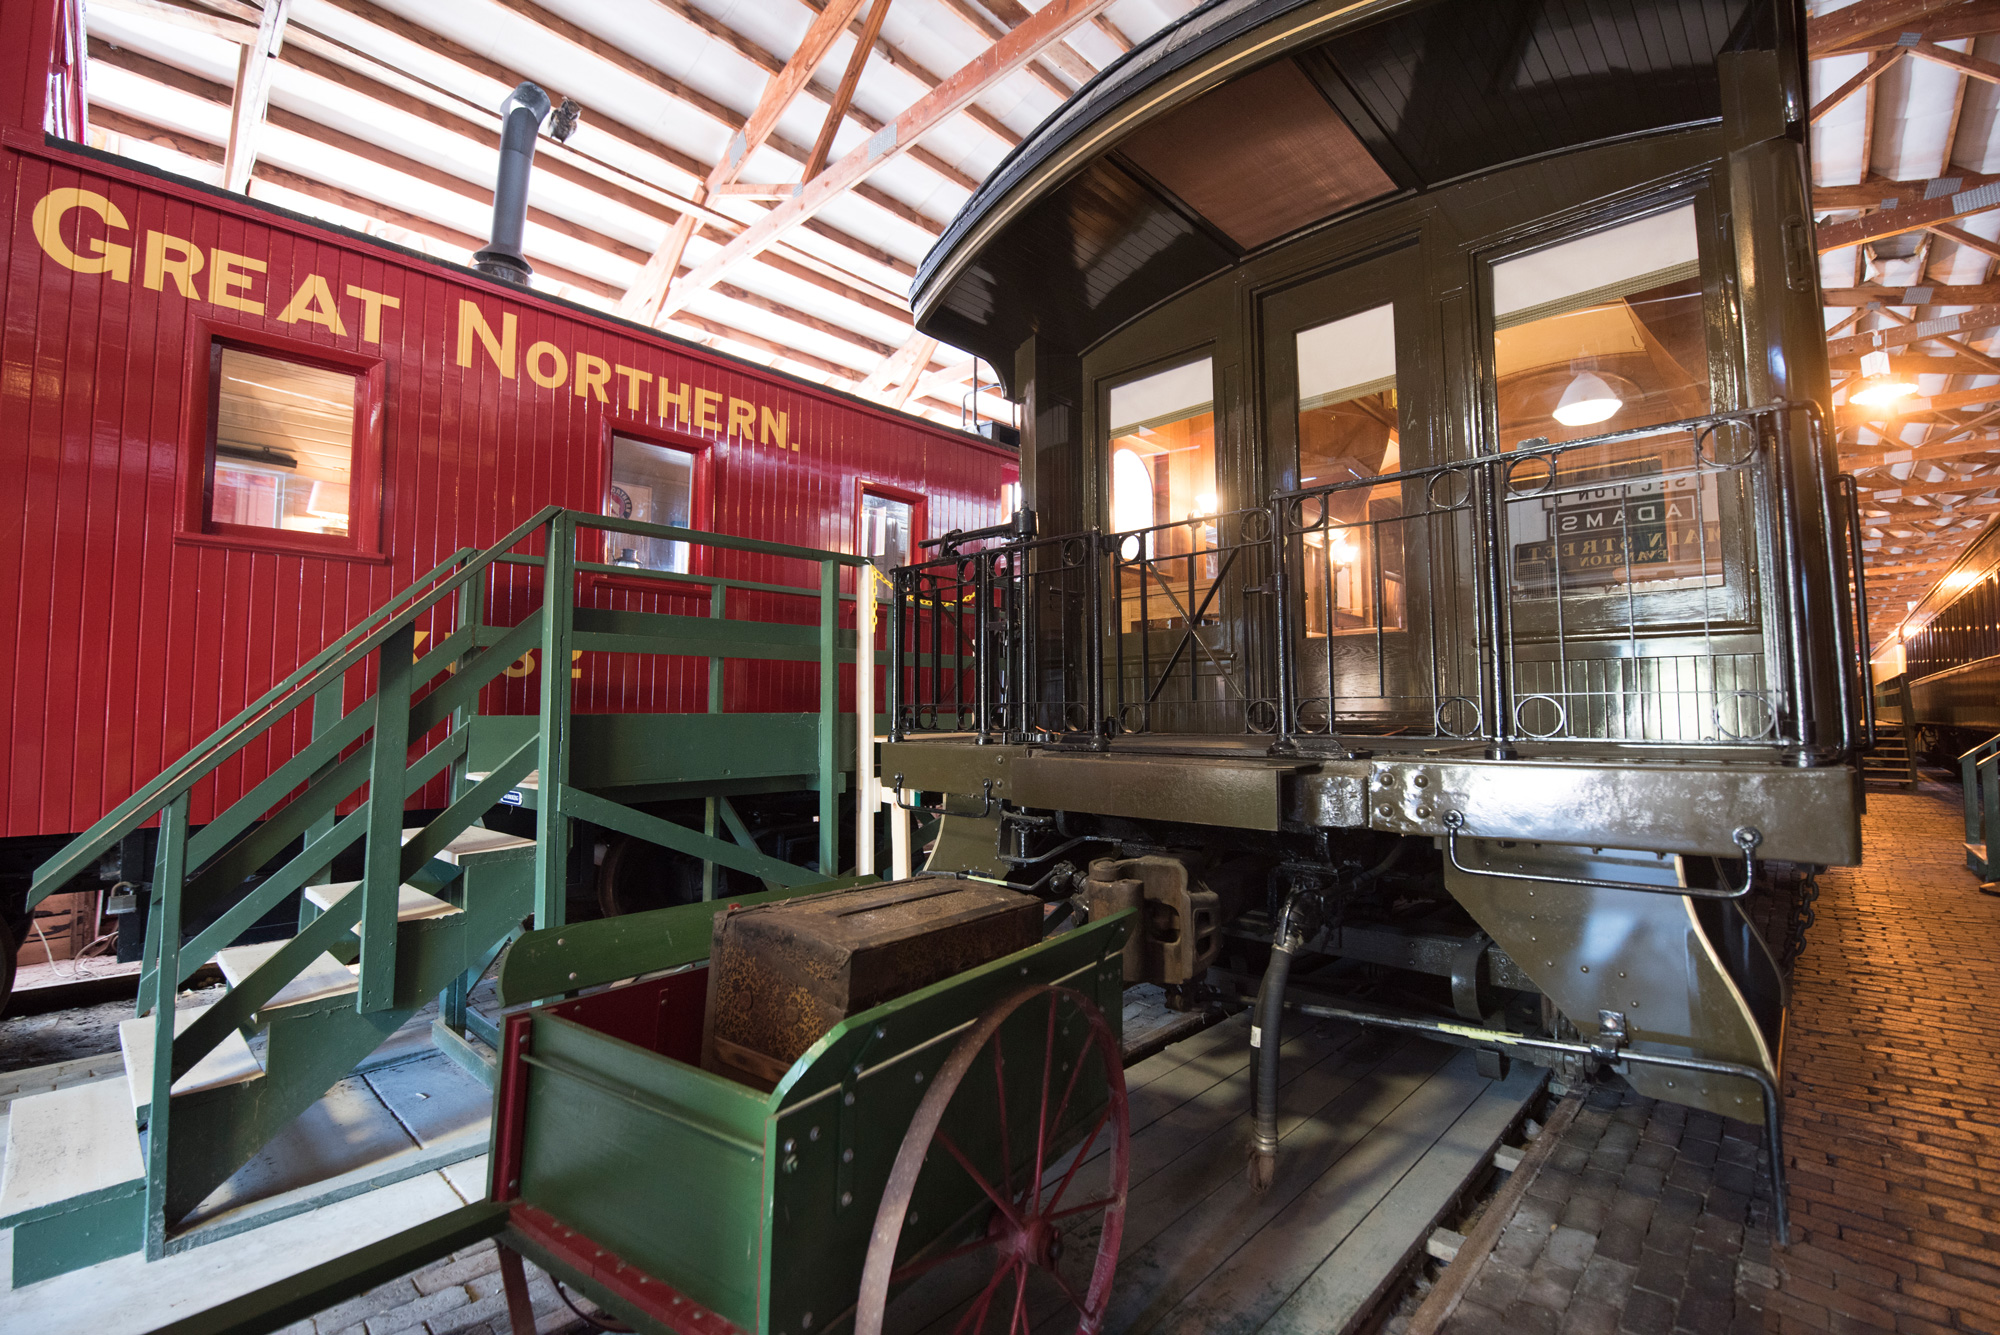 Mid-Continent Railway Museum